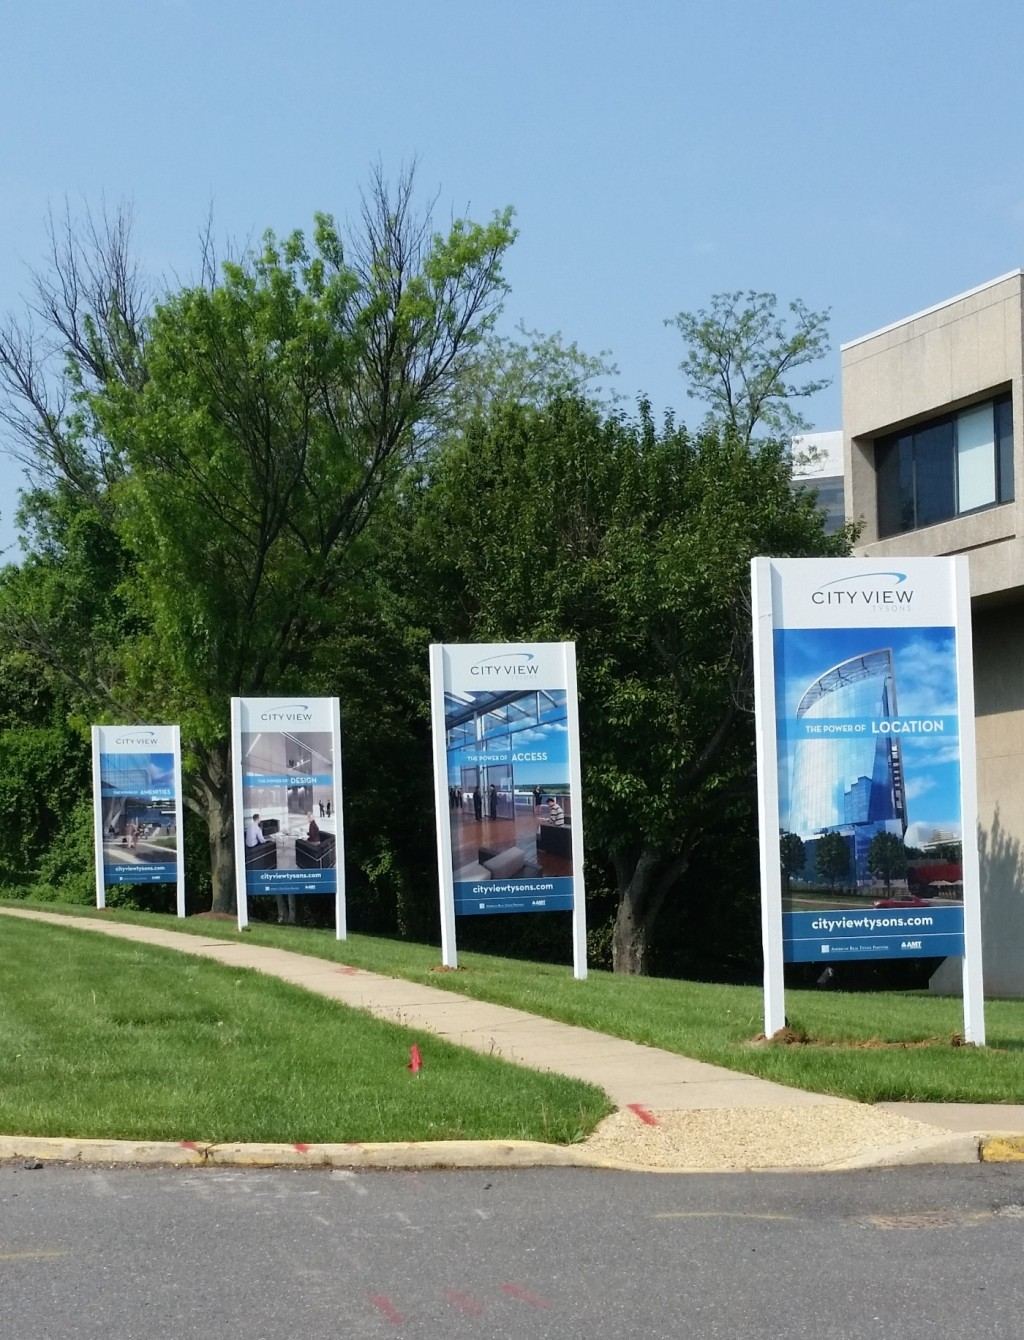 Site sign produced and installed by CSI for City View Tysons. Visit csi2.com for more information.